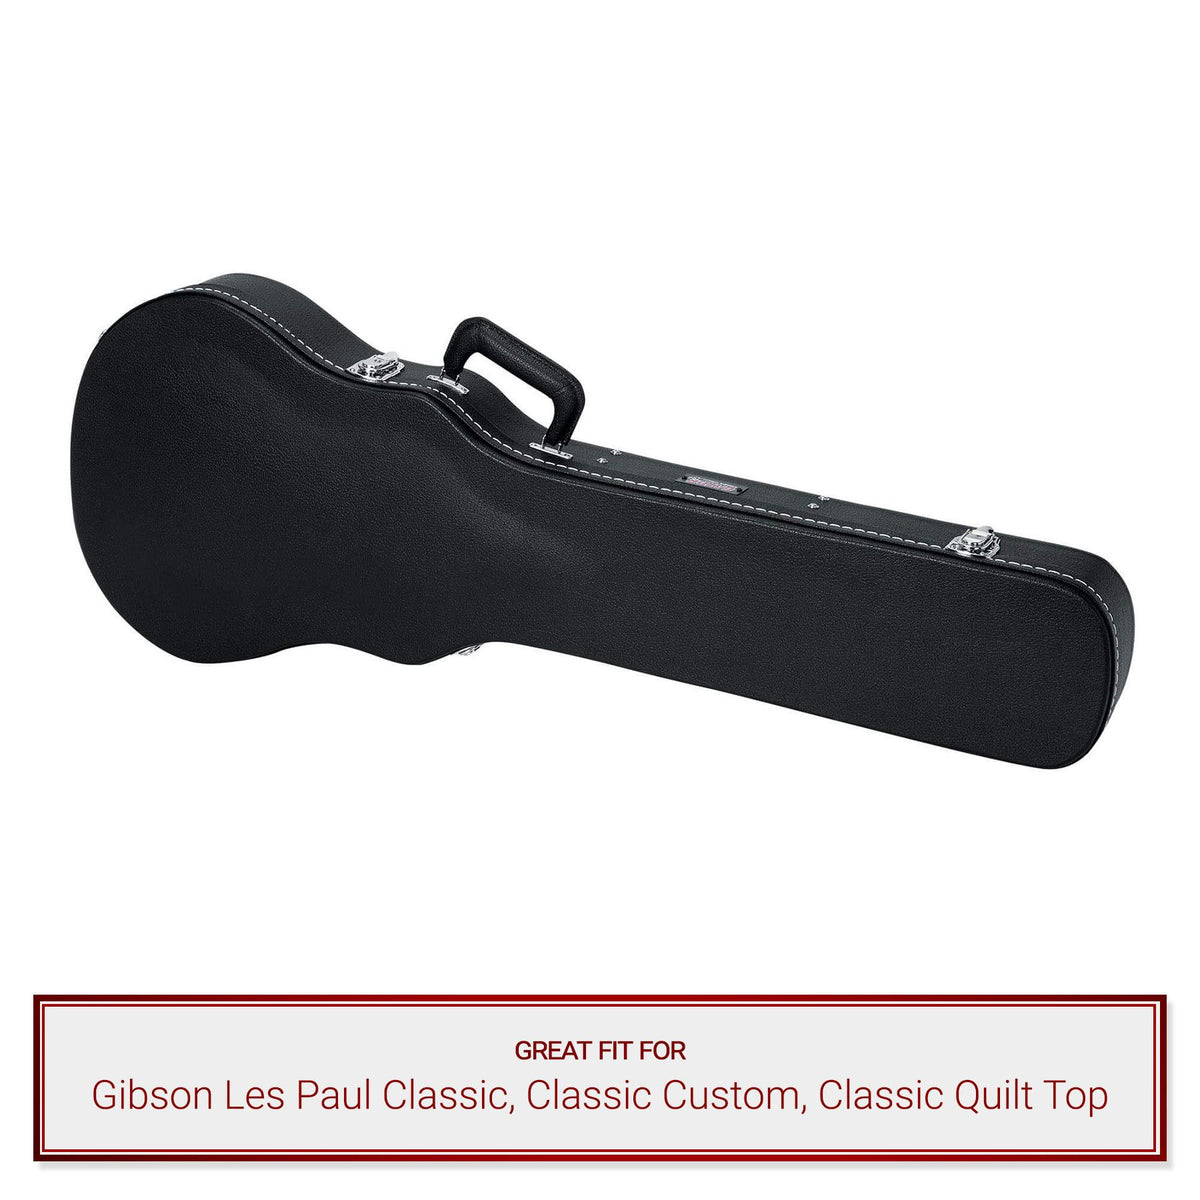 Gator Cases Deluxe Wood Case for Gibson Les Paul Classic, Classic Custom, Classic Quilt Top Guitars